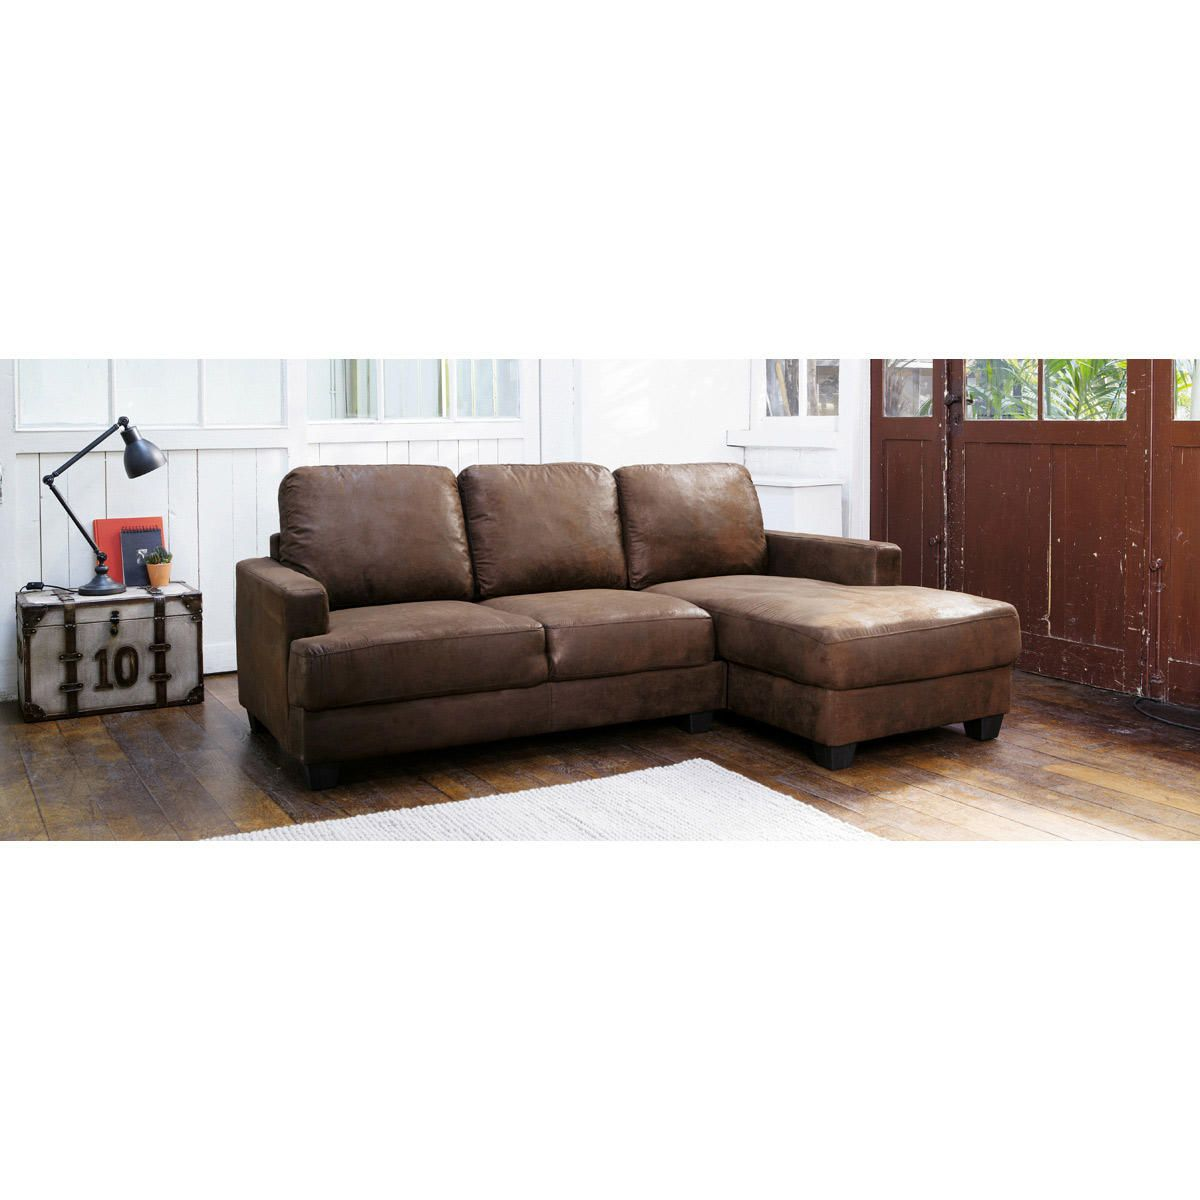 Reclining Sofa  seater imitation suede RHF corner sofa in brown Philadelphie Maisons du Monde